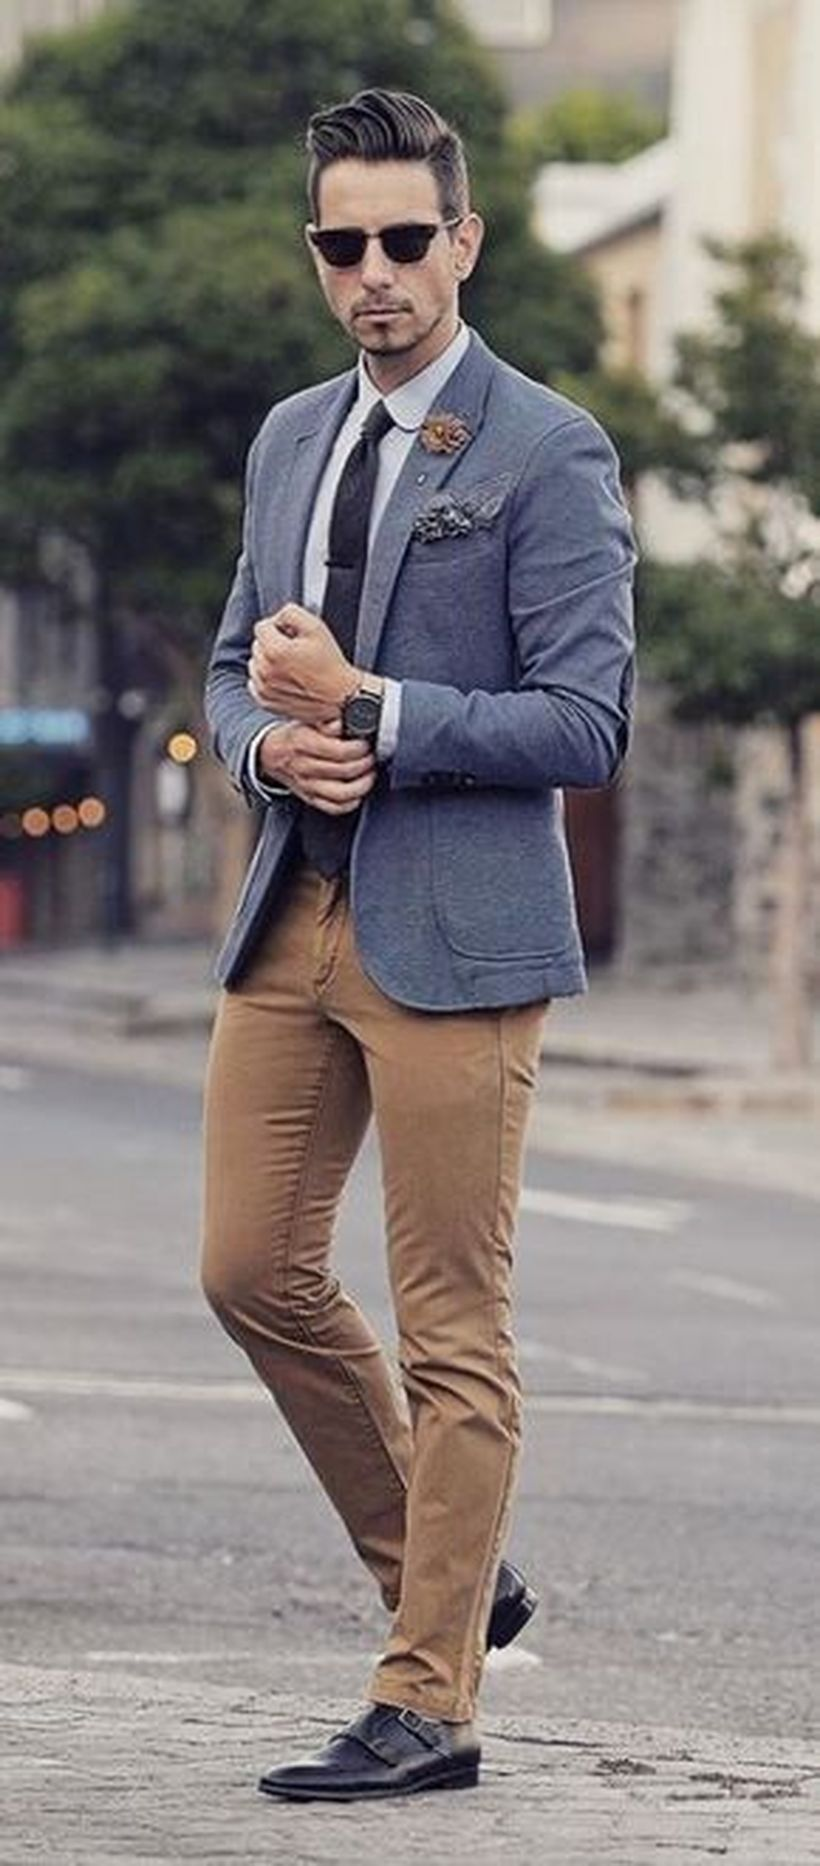 62 Men's Fashion Trend for Casual Fall Outfit in 2020 ...